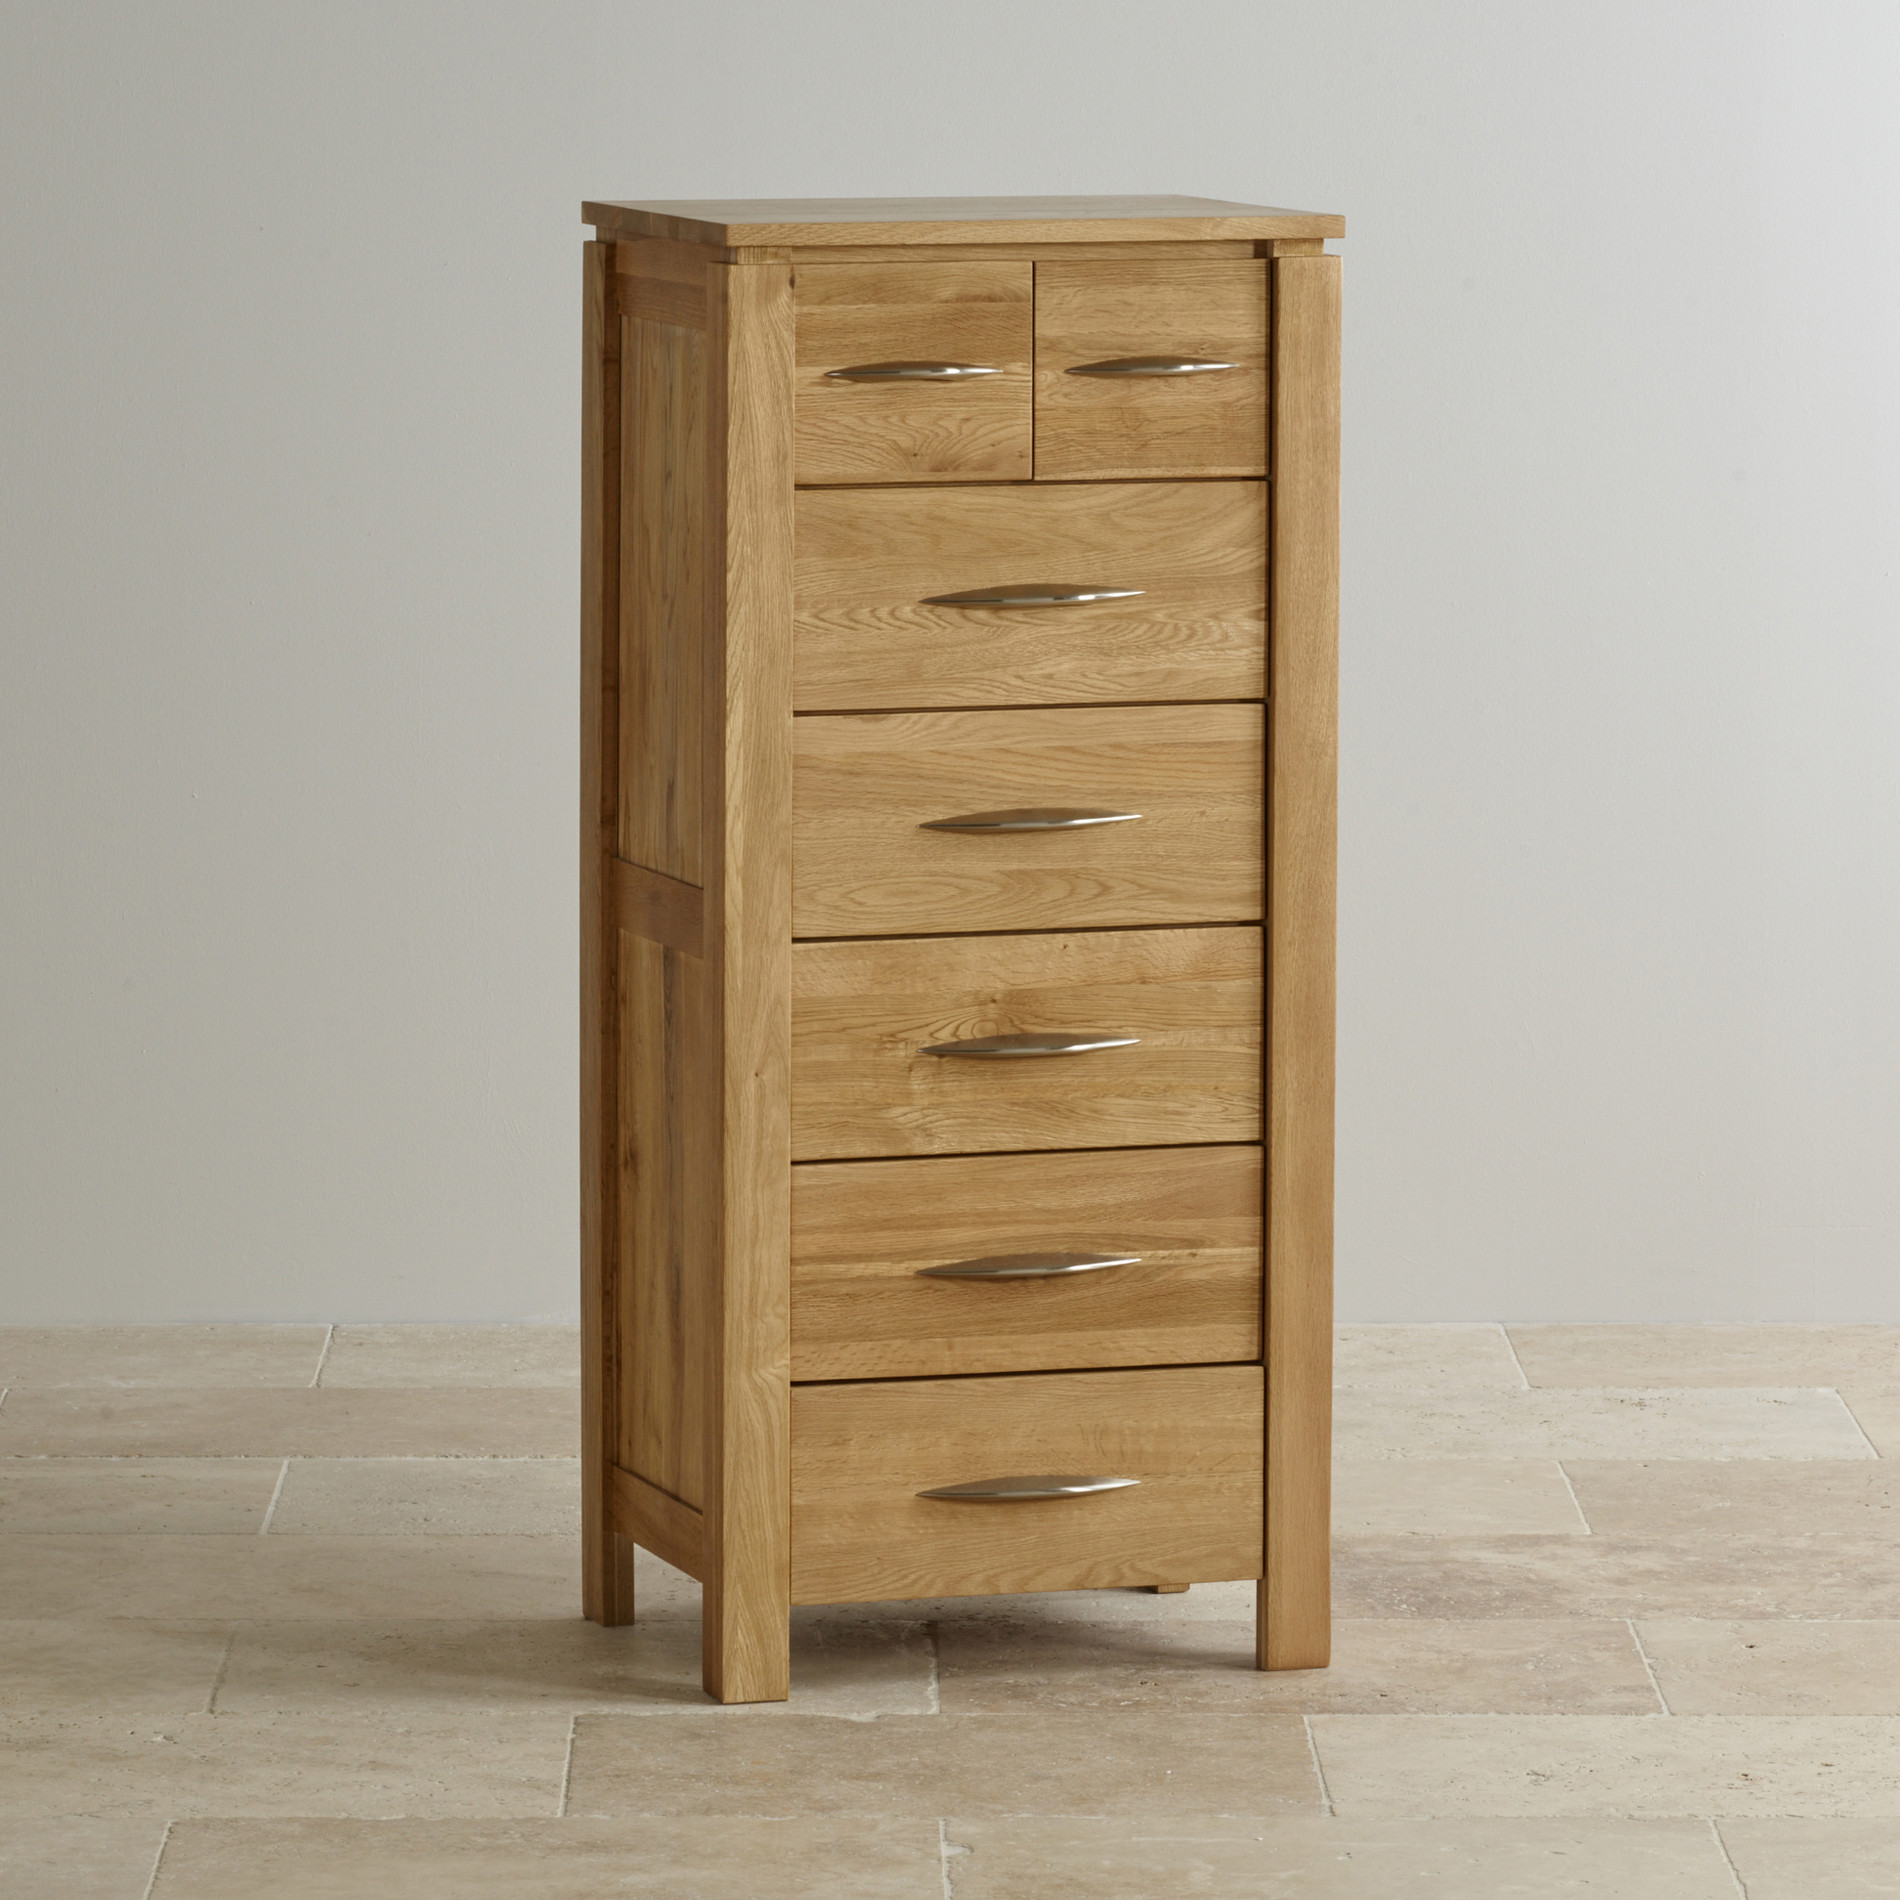 Galway natural solid oak tall drawer chest